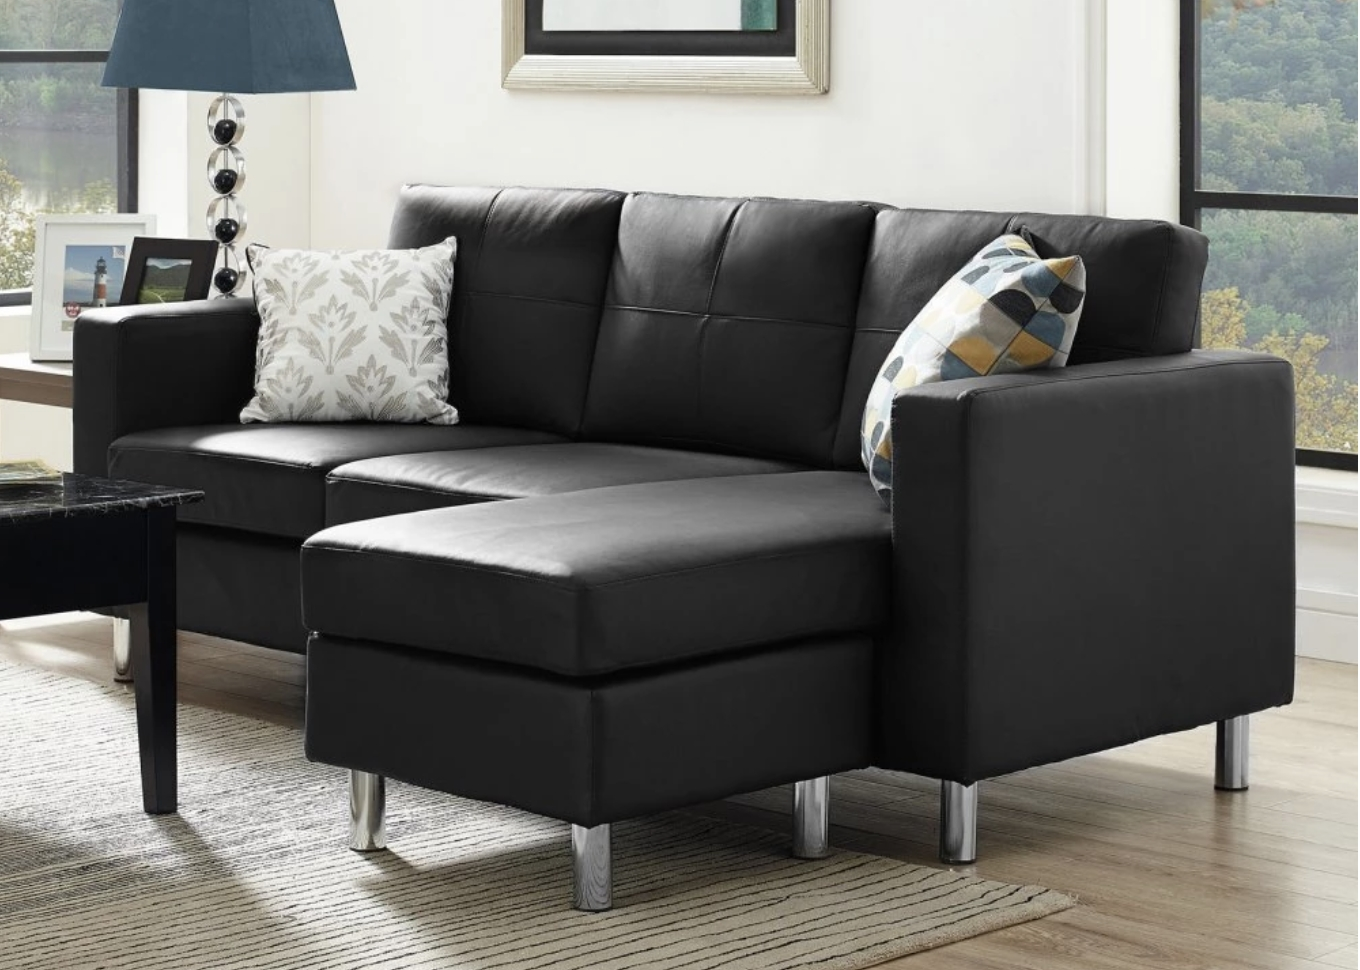 Well Known 75 Modern Sectional Sofas For Small Spaces (2018) Inside Huge Sofas (View 18 of 20)